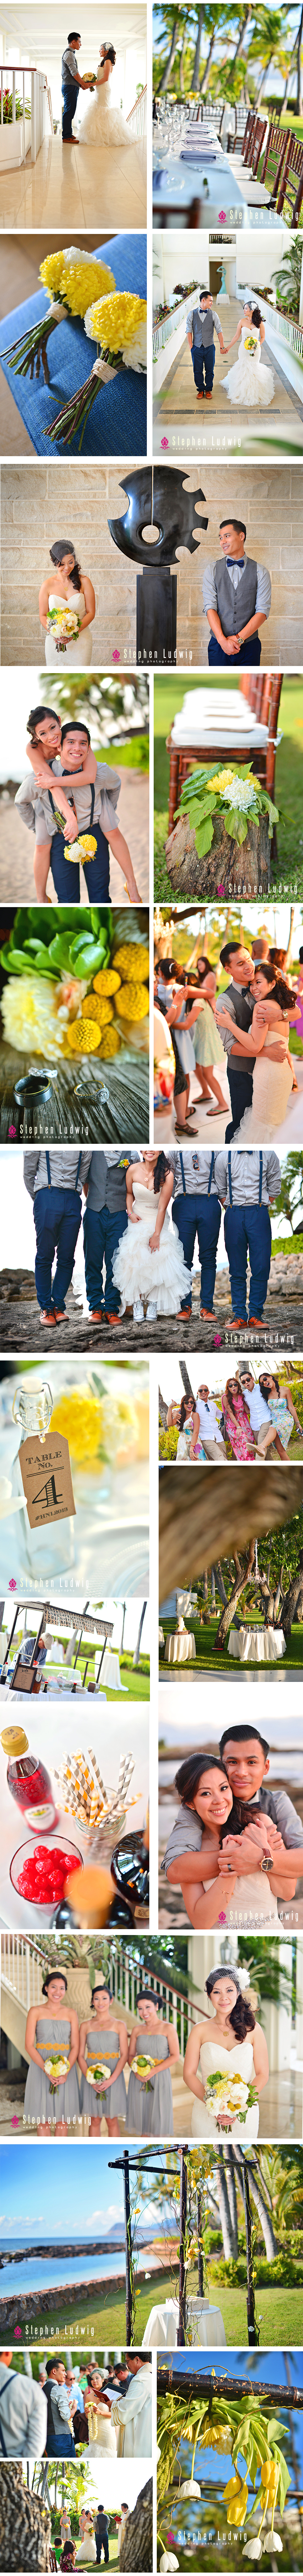 Hugh-and-Linda-Stephen-Ludwig-Hawaii-Wedding-Photography-2